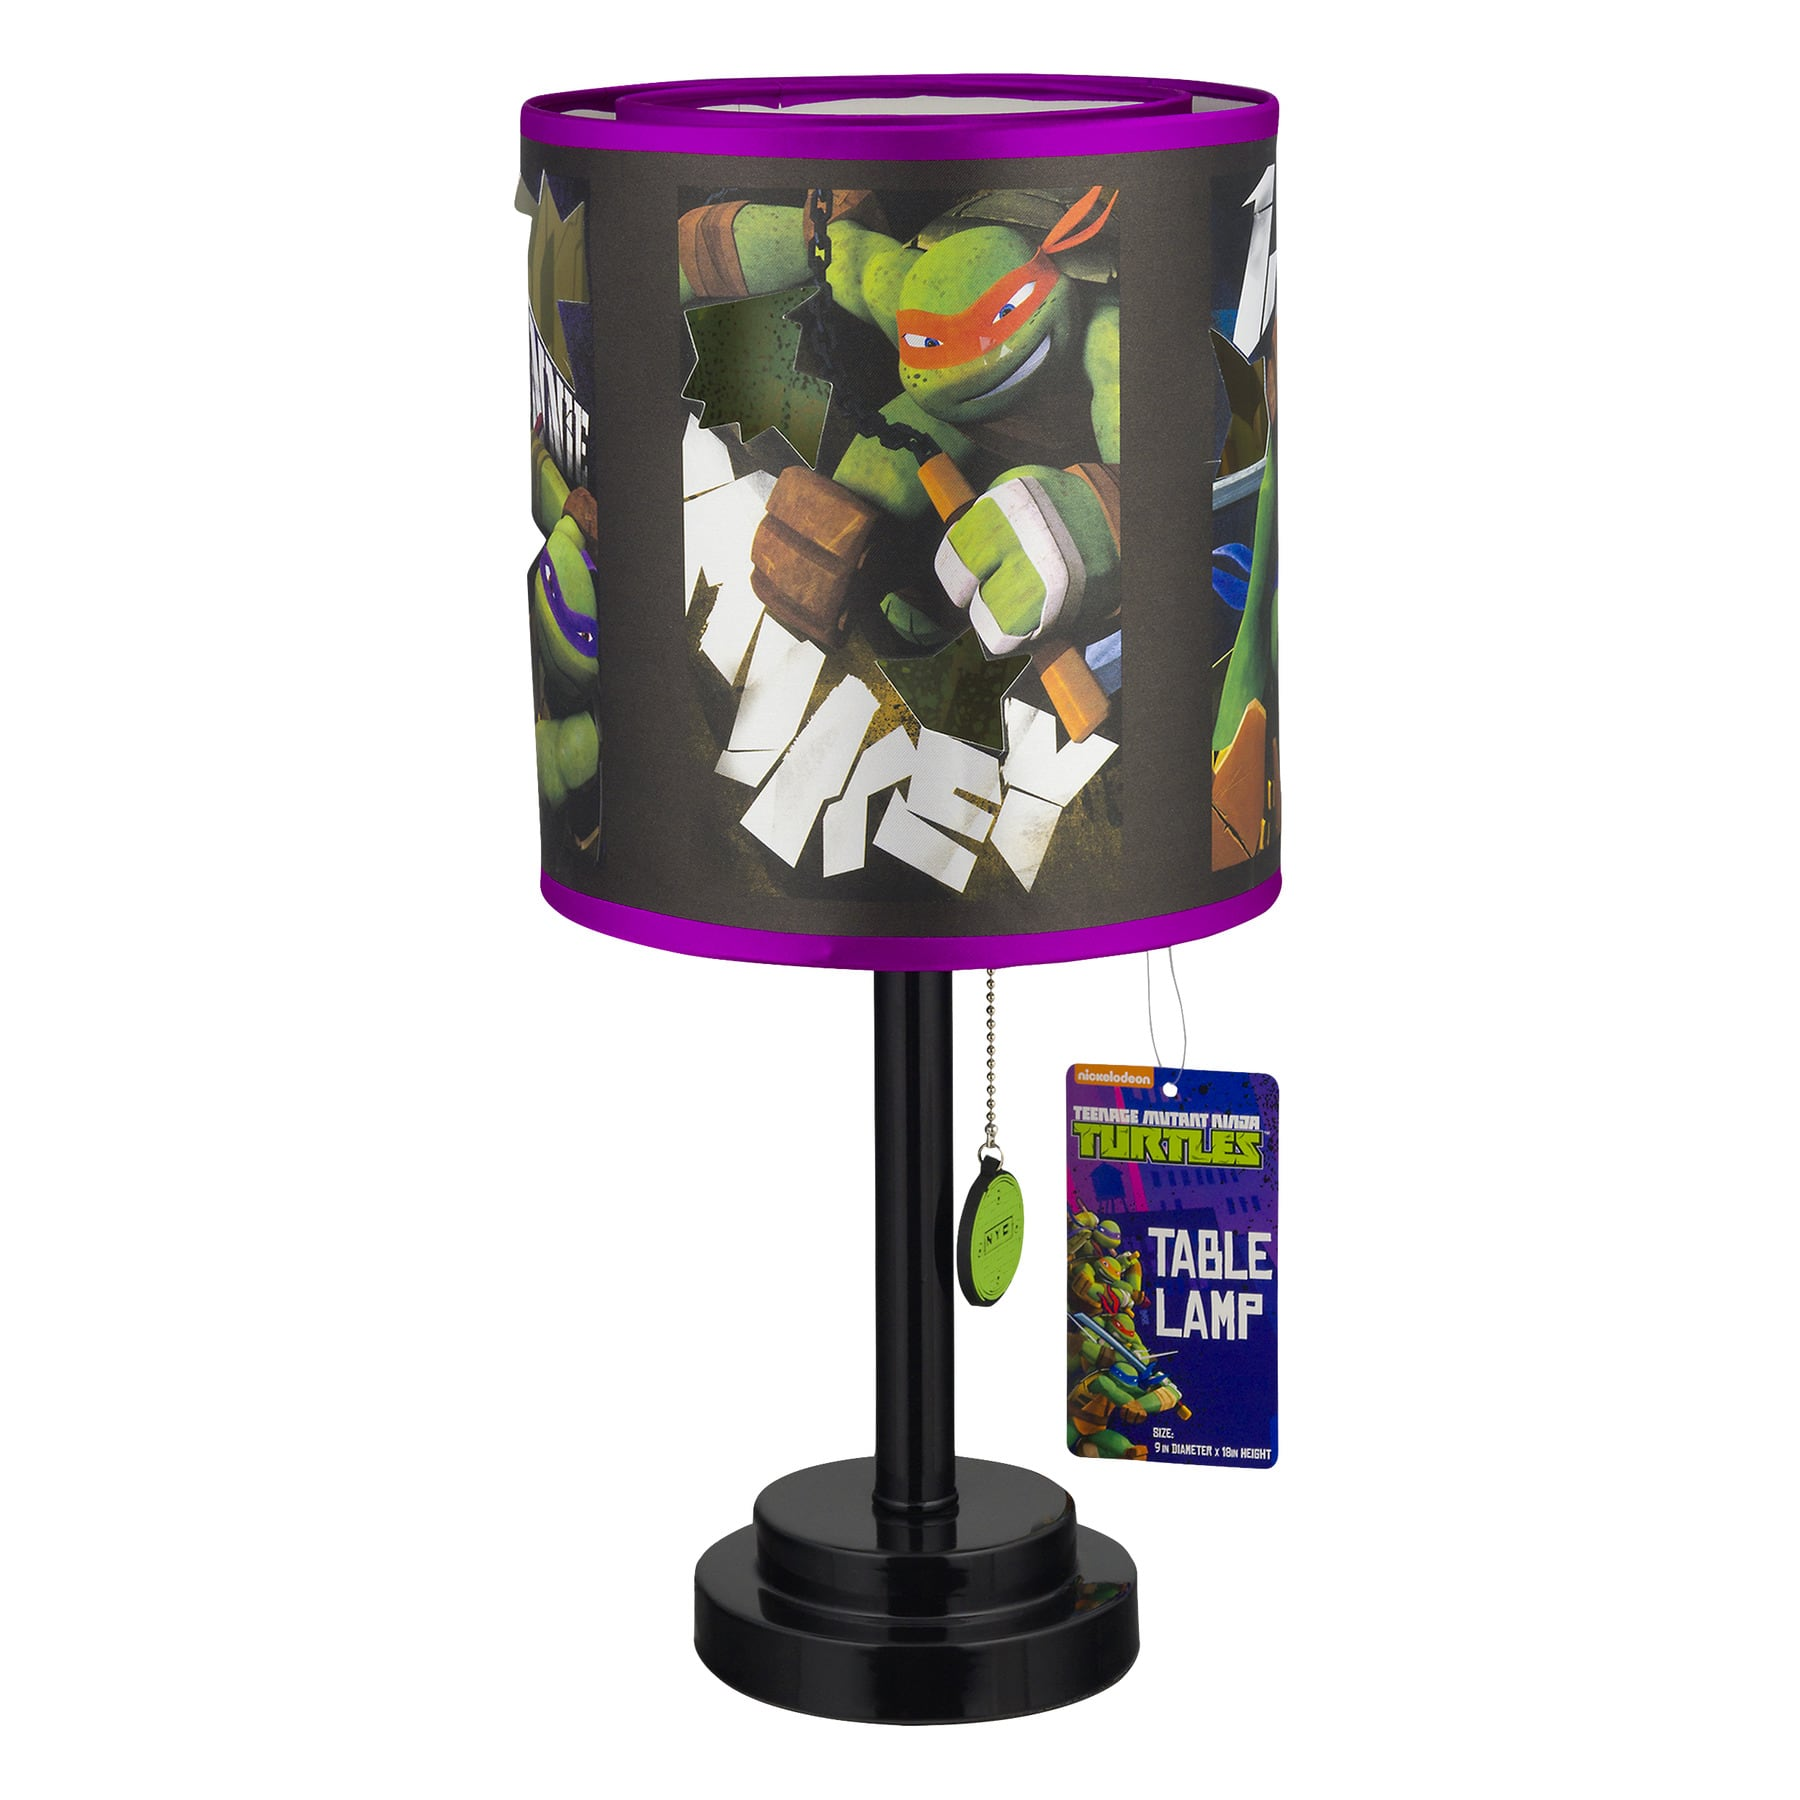 Teenage Mutant Ninja Turtles Table Lamp $12.18